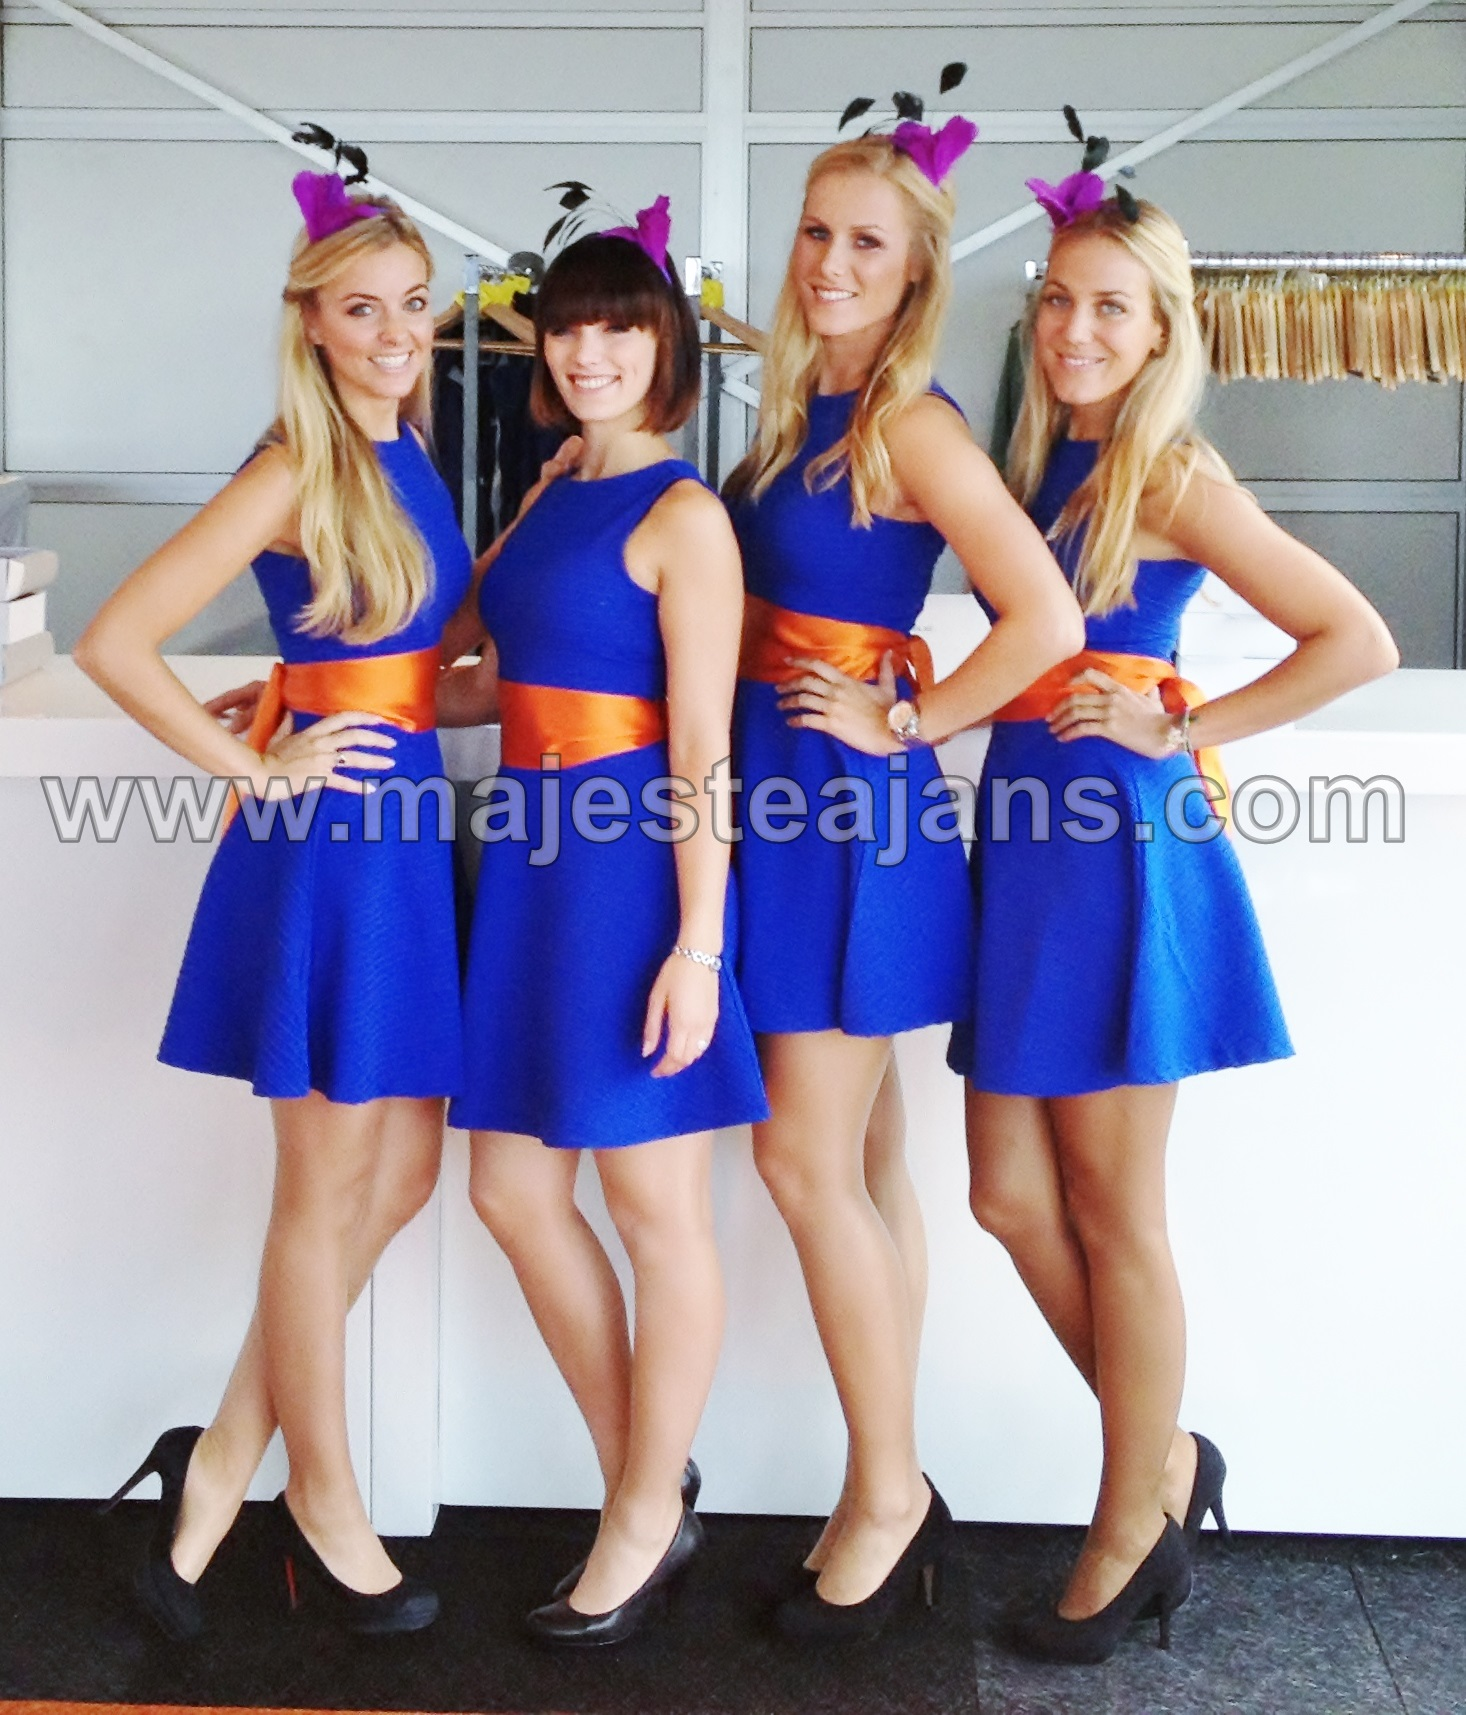 event hostess myo event people amp support hostess service messe